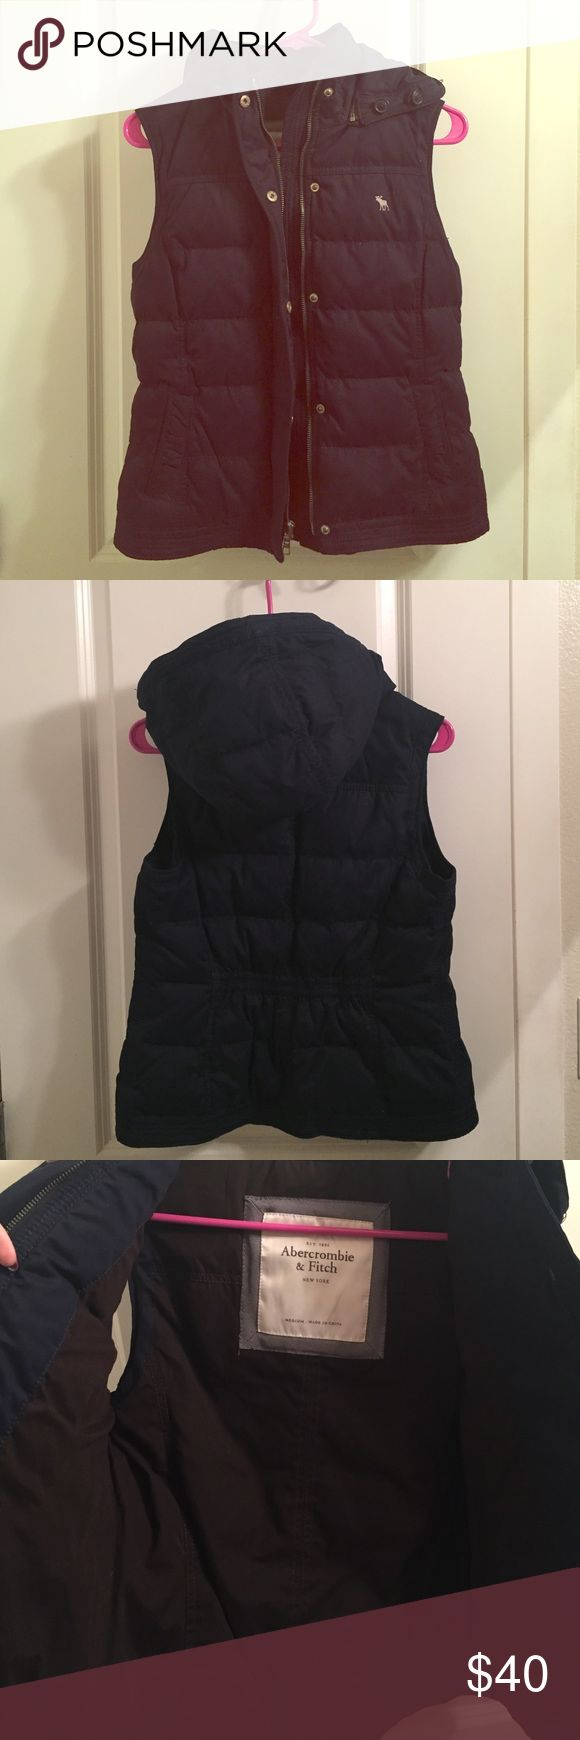 Abercrombie and Fitch down vest Excellent condition! Like new, navy down Abercrombie and Fitch vest with removable hood. Abercrombie & Fitch Jackets & Coats Vests